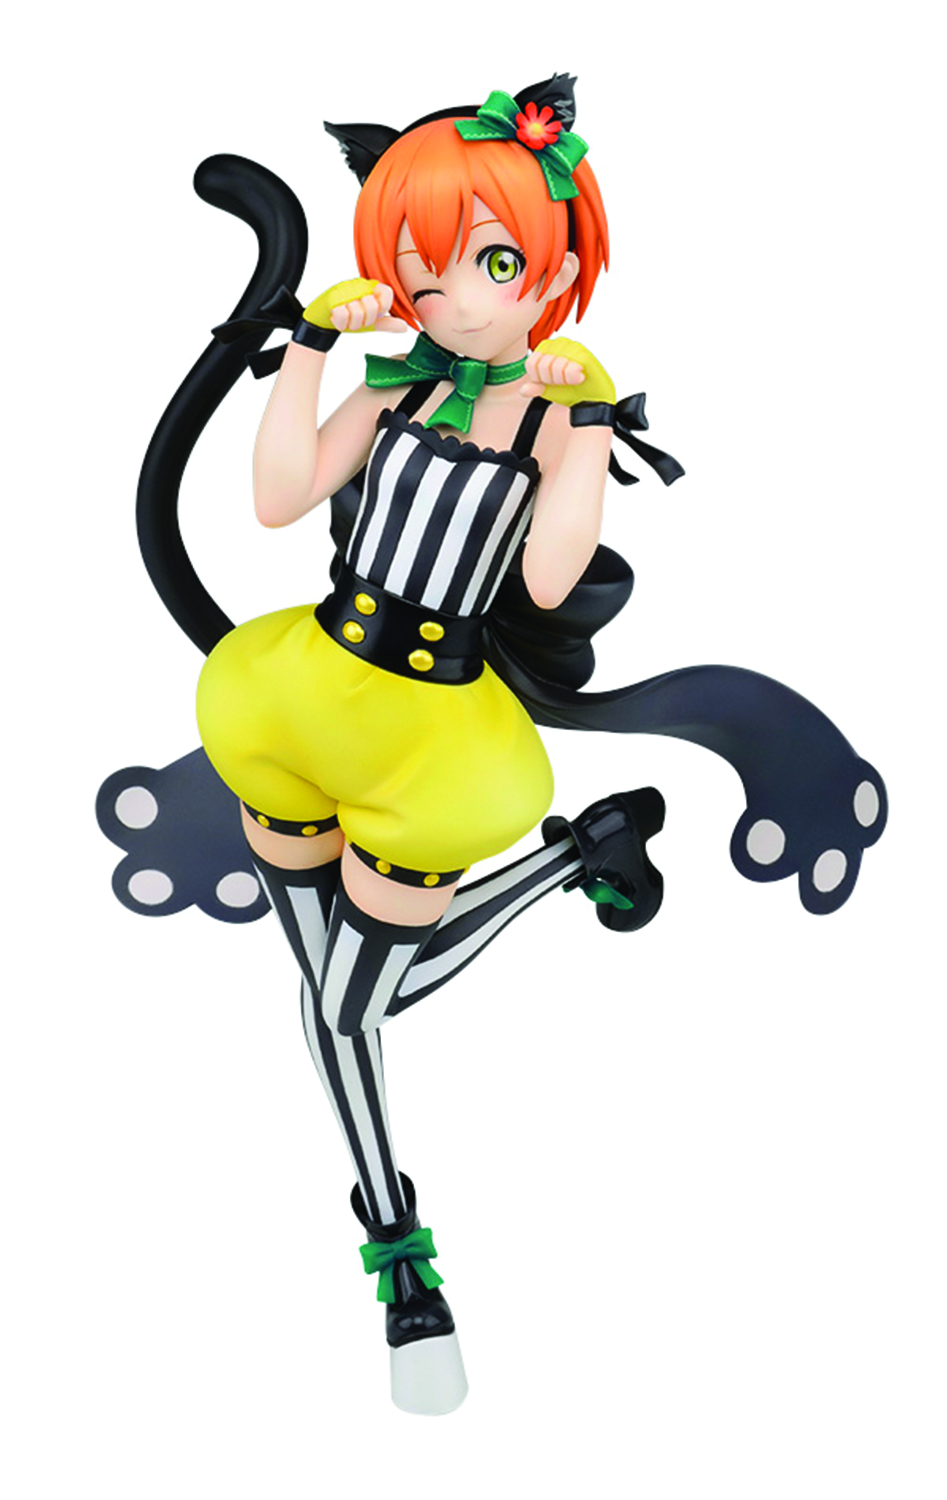 LOVE LIVE SCHOOL IDOL FESTIVAL RIN HOSHIZORA 1/7 PVC FIG